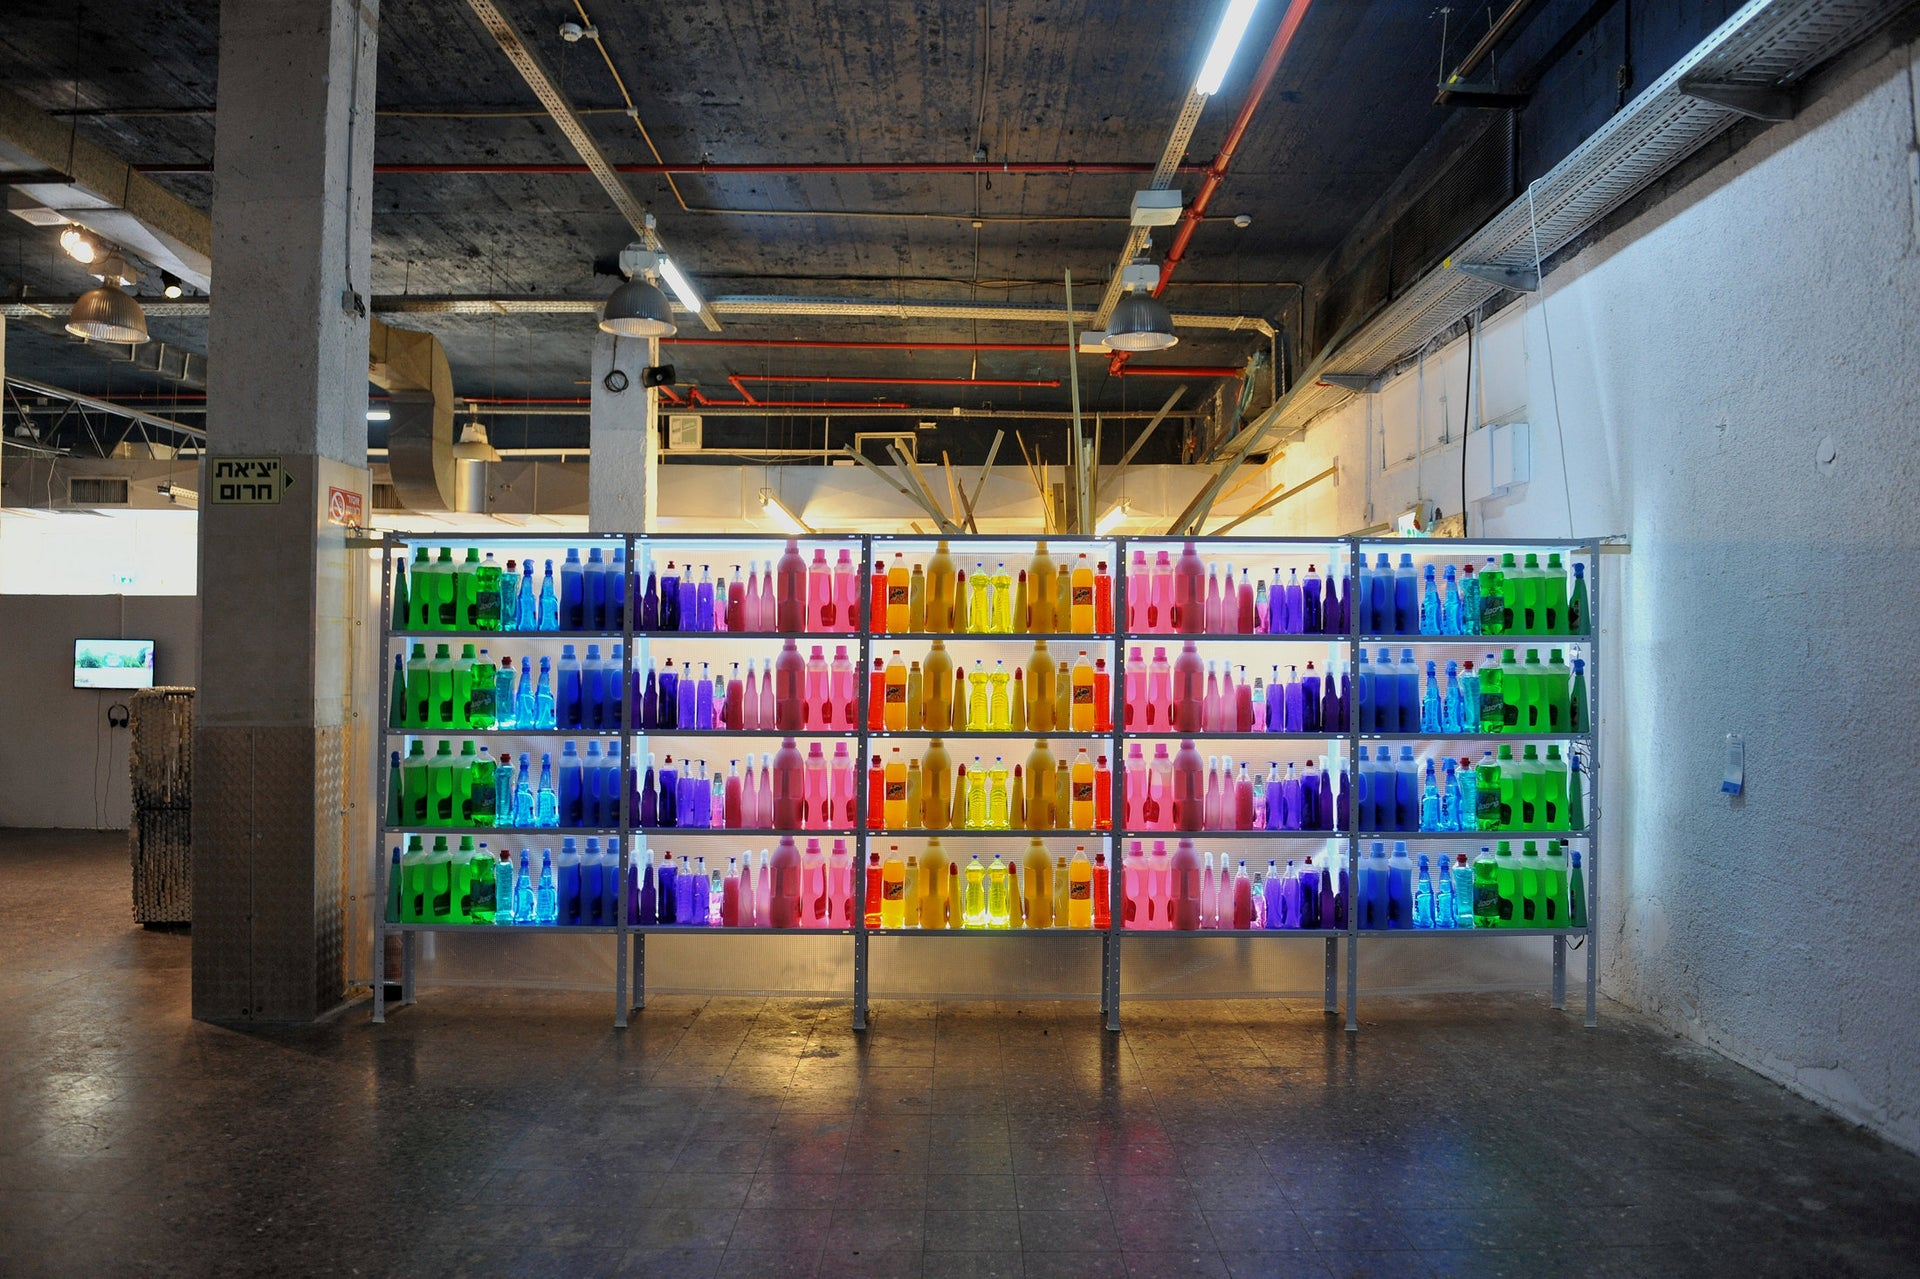 A colorful installation by Israeli artist Aviv Grinberg at the Zumu museum, January 2020.